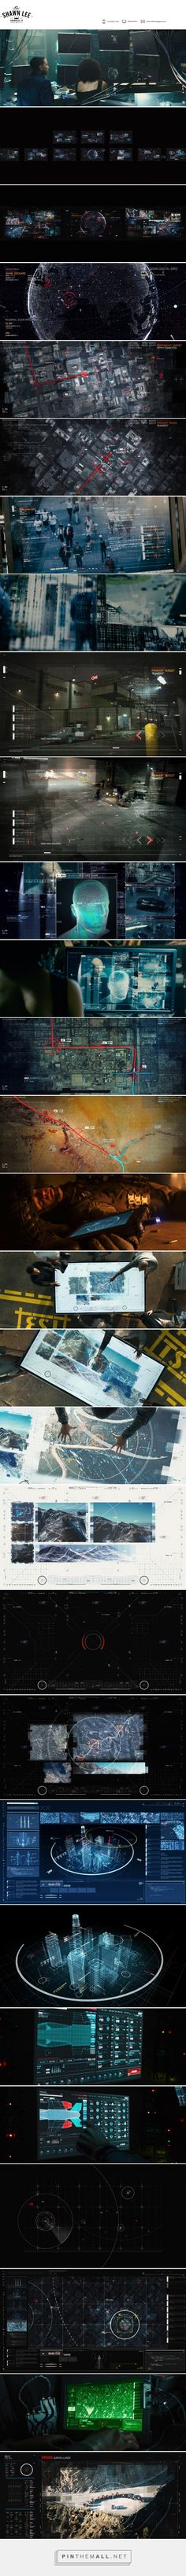 FURIOUS 7 - Shawn Lee... - a grouped images picture - Pin Them All